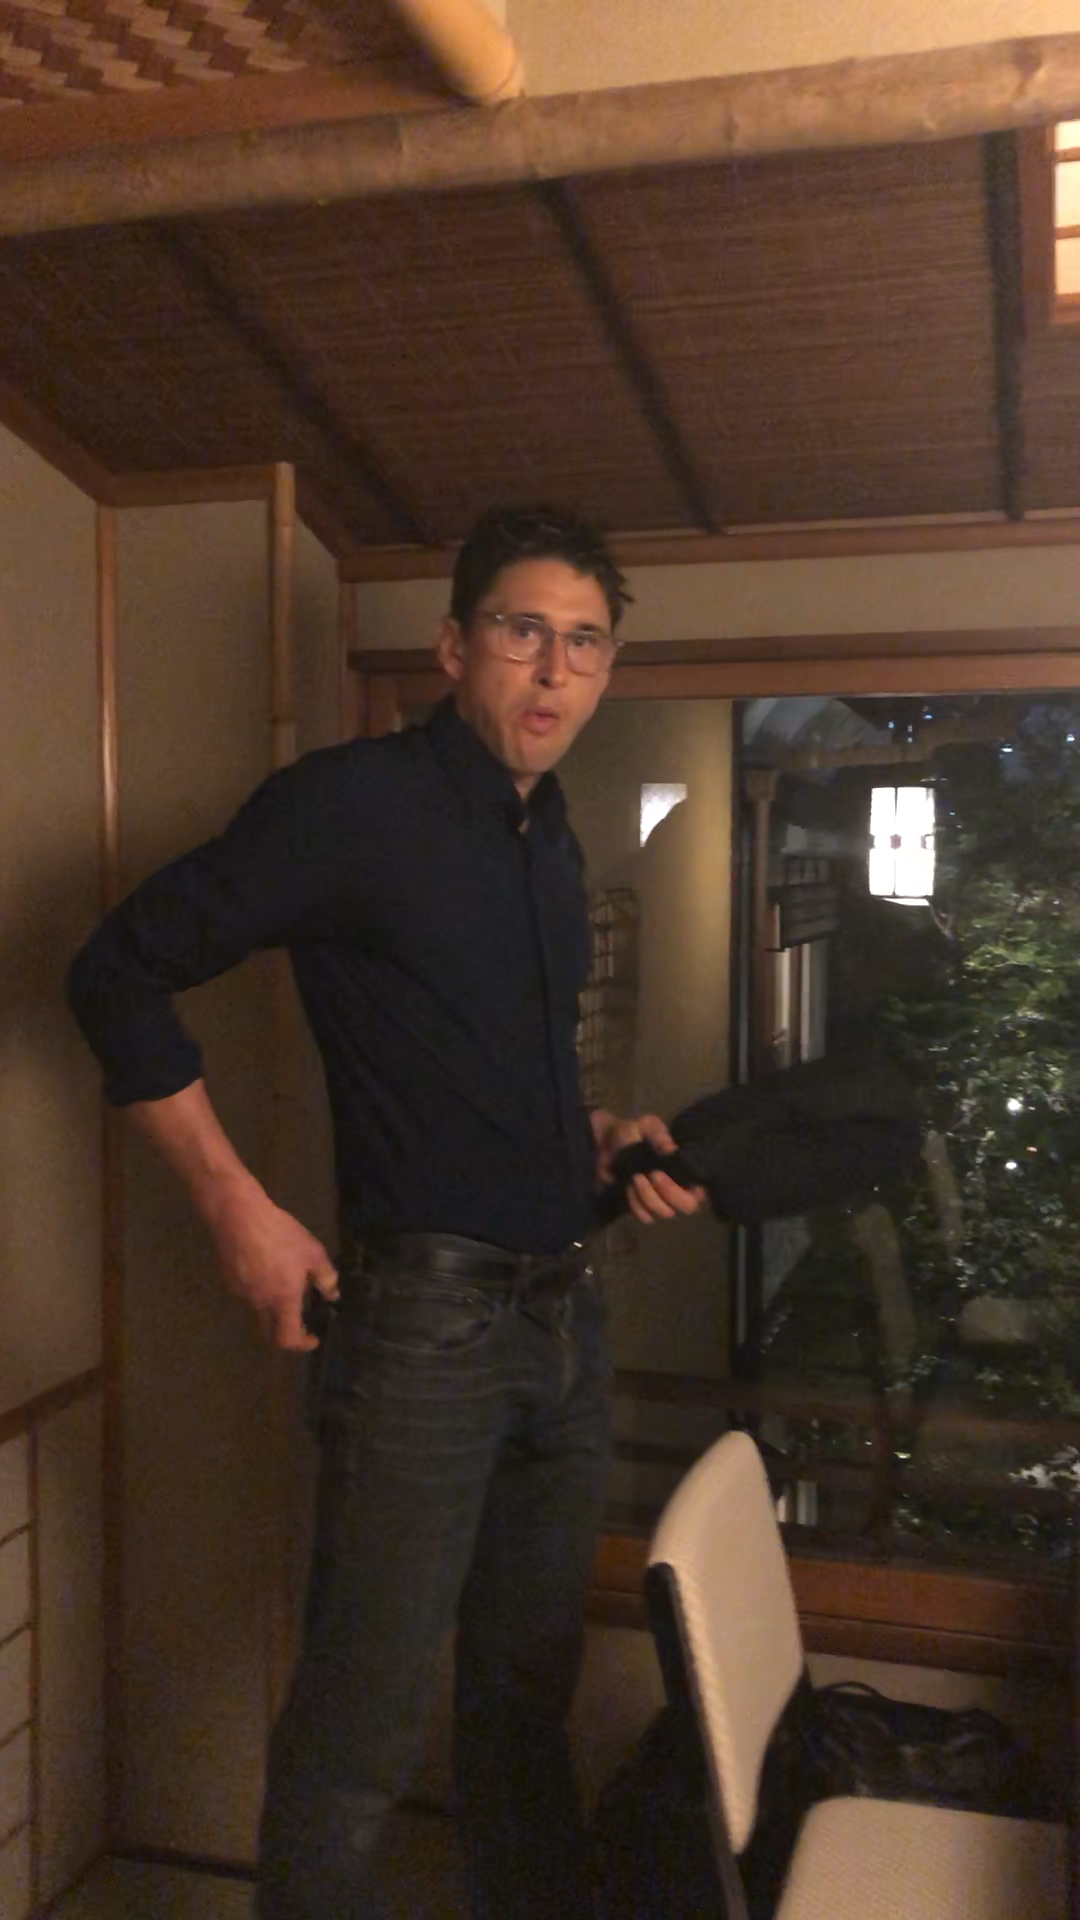 Ben got surprised by private room!